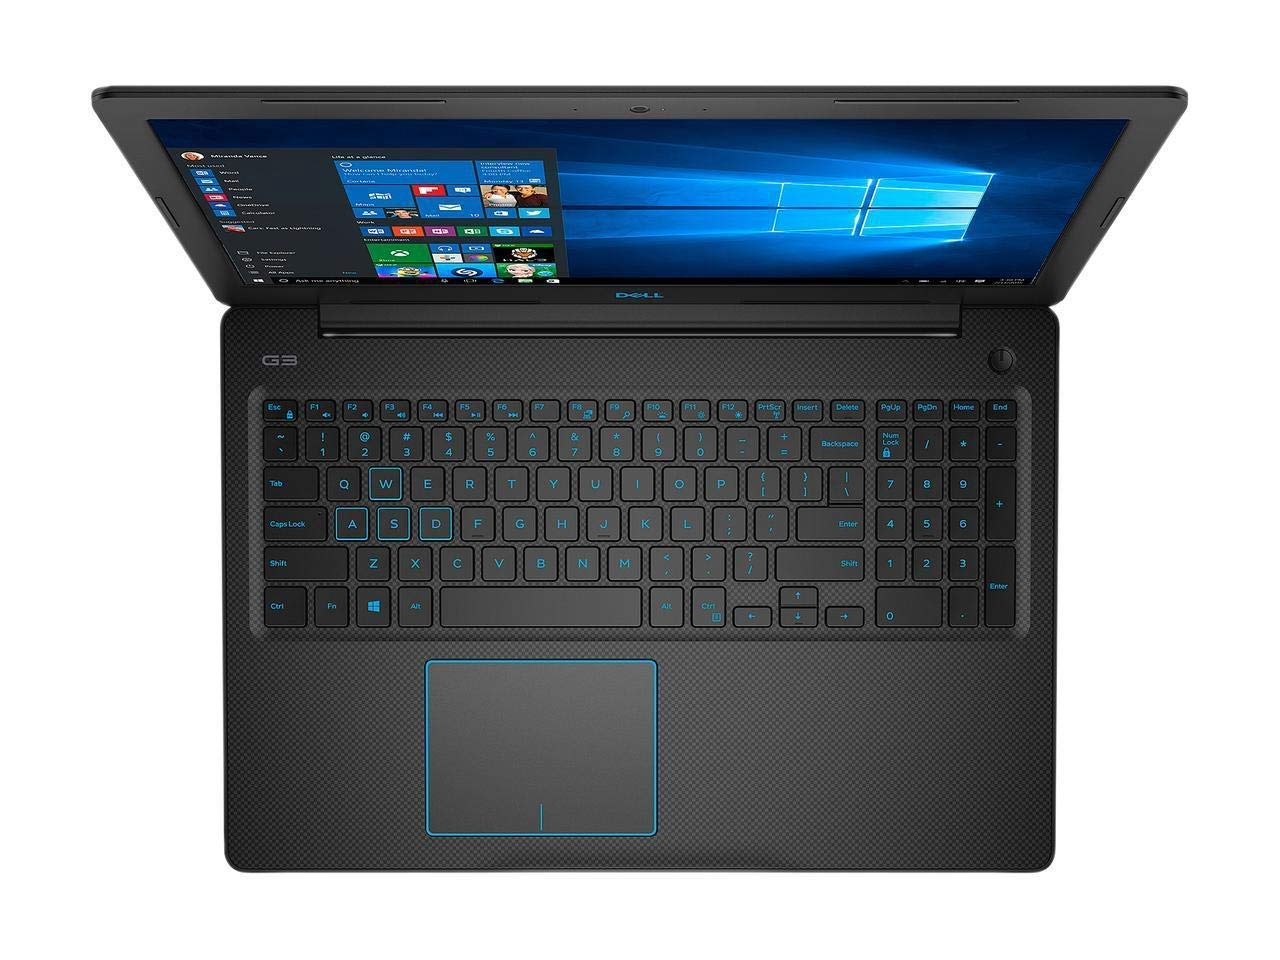 Dell G3 15.6 FHD IPS High Performance Gaming Laptop, Intel Quad Core i5-8300H up to 4.0GHz, 16GB Memory, 512GB SSD, NVIDIA GeForce GTX 1050 Ti 4GB, Backlit Keyboard, Windows 10